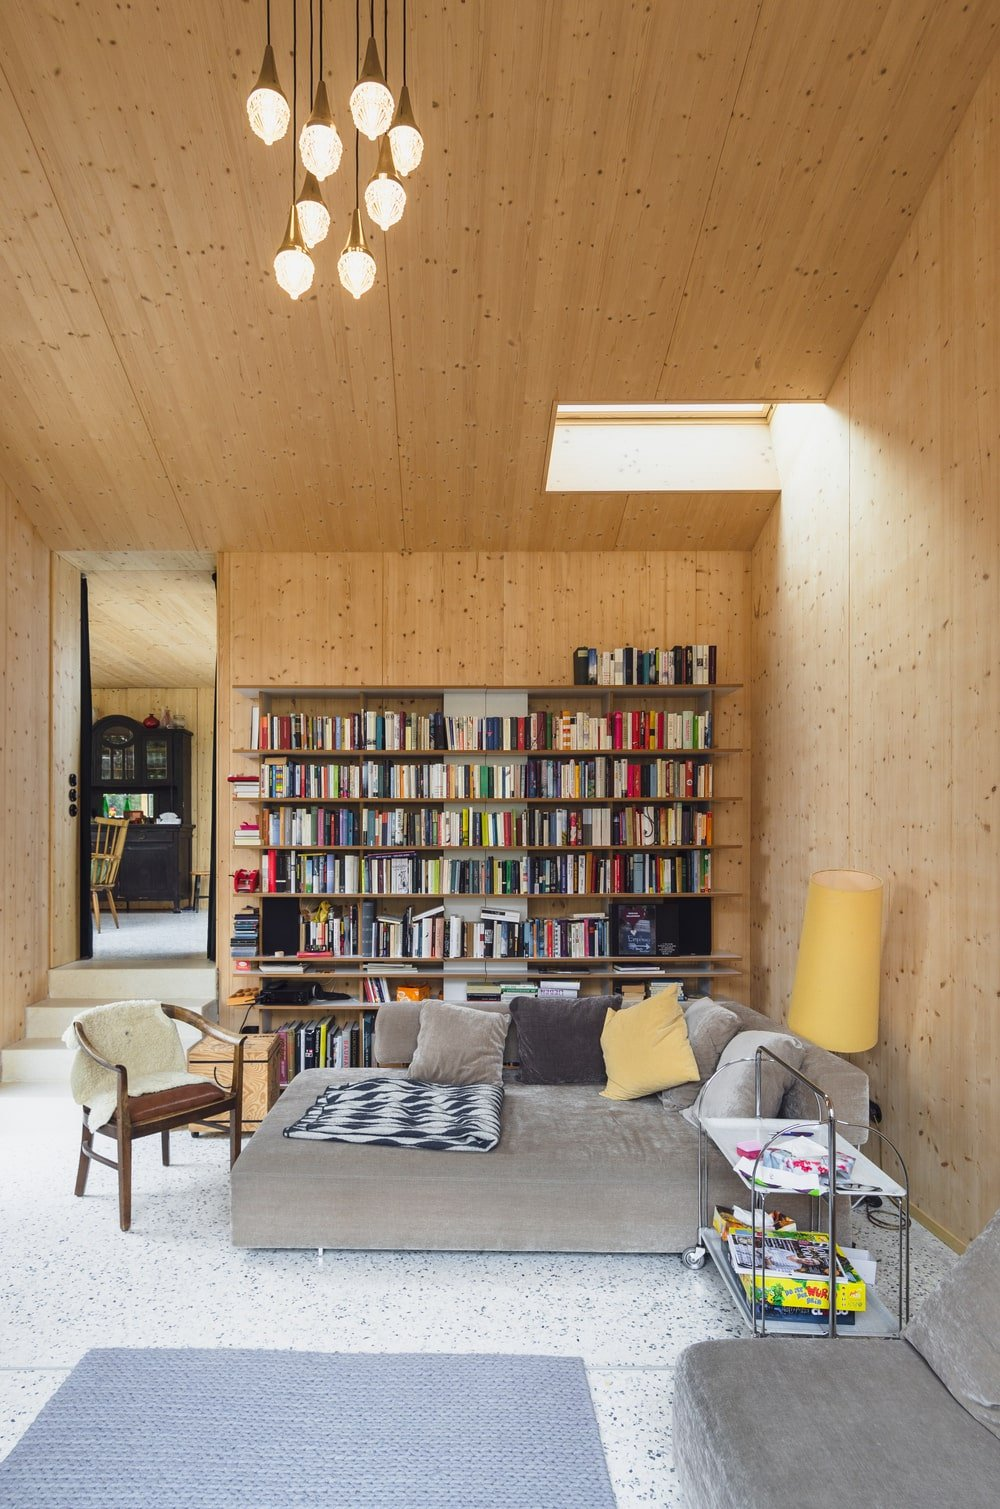 This is a close look at the living room with a gray sectional sofa, built-in bookshelves and a skylight on its tall wooden ceiling.